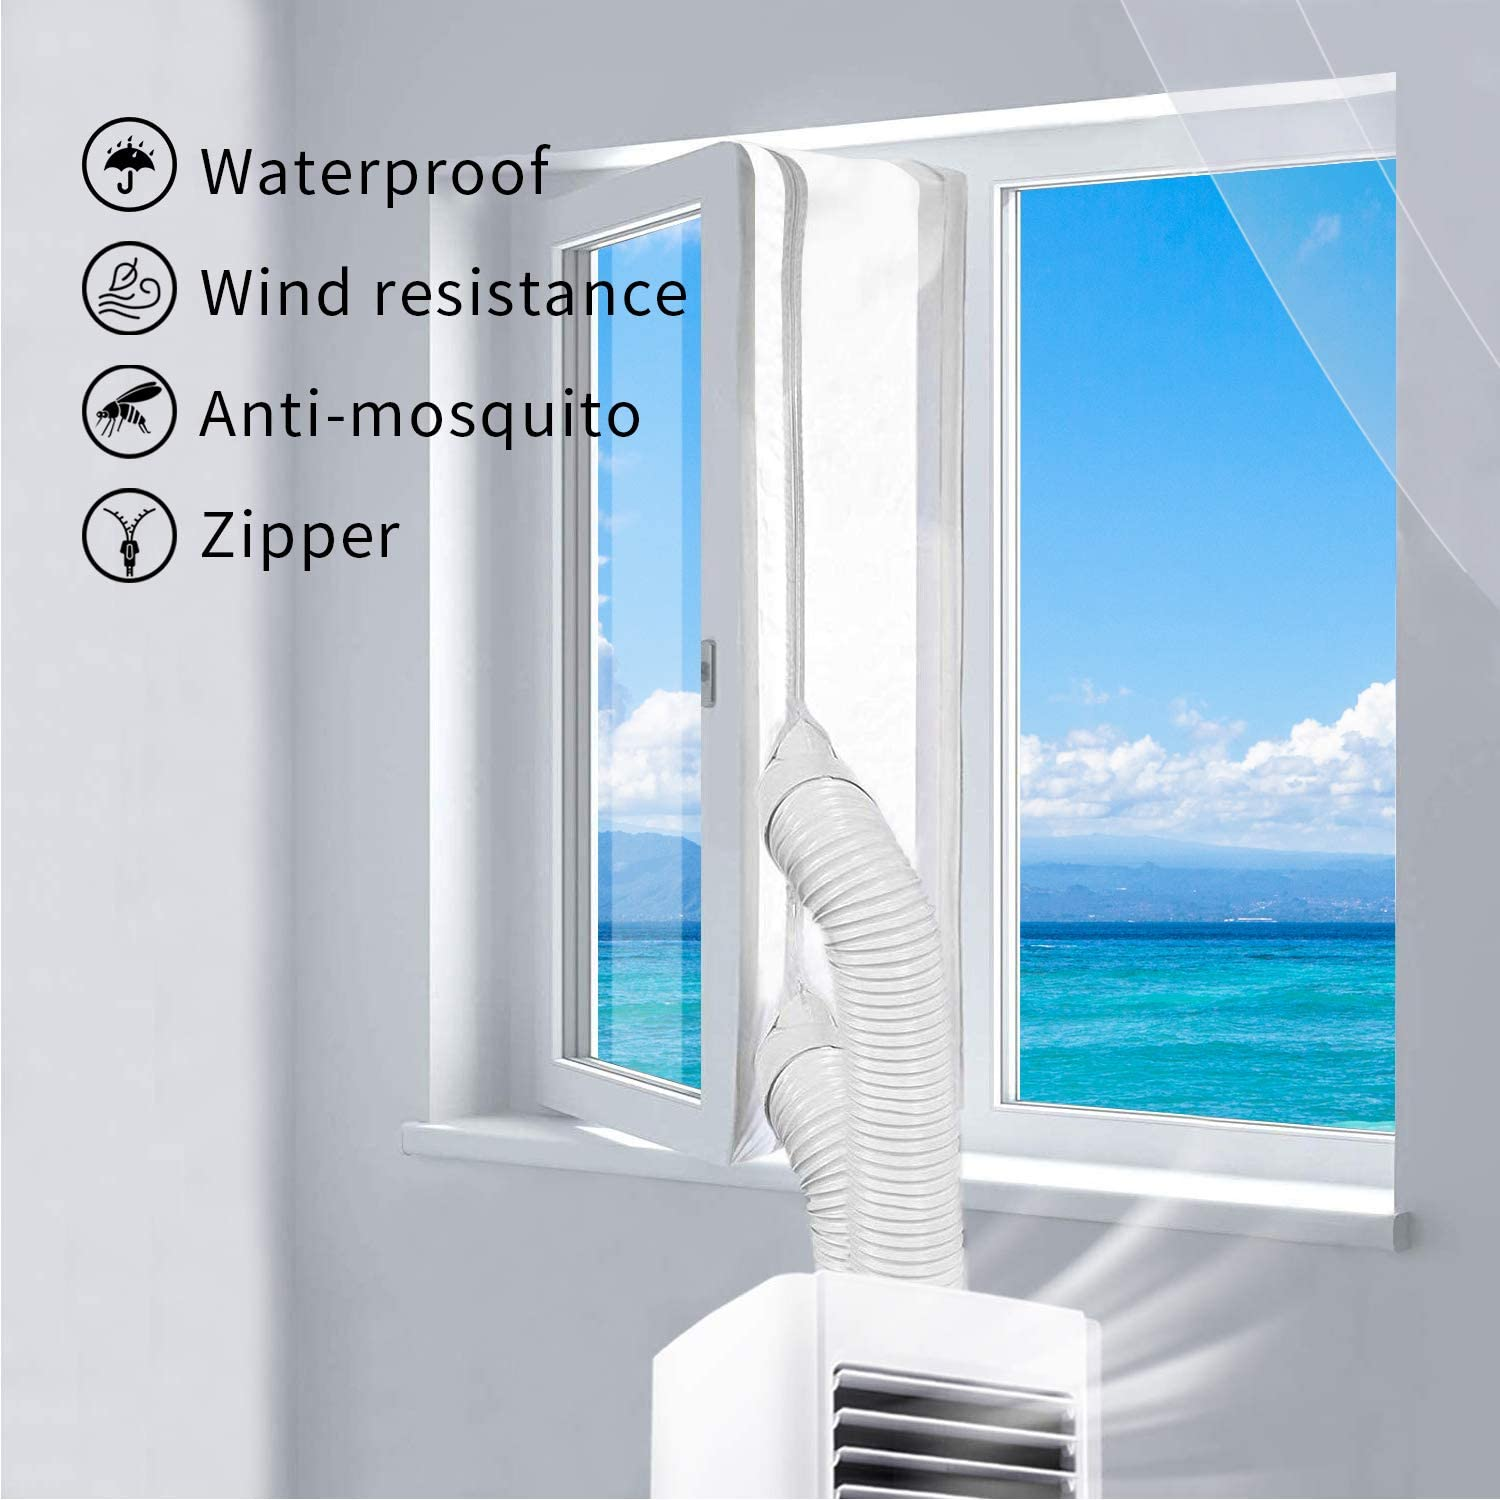 SUNKONG Window Seal for Mobile Air Conditioners and Exhaust Air Dryers, Air Conditioner Airlock for Universal Windows with a Maximum Length of 400 cm